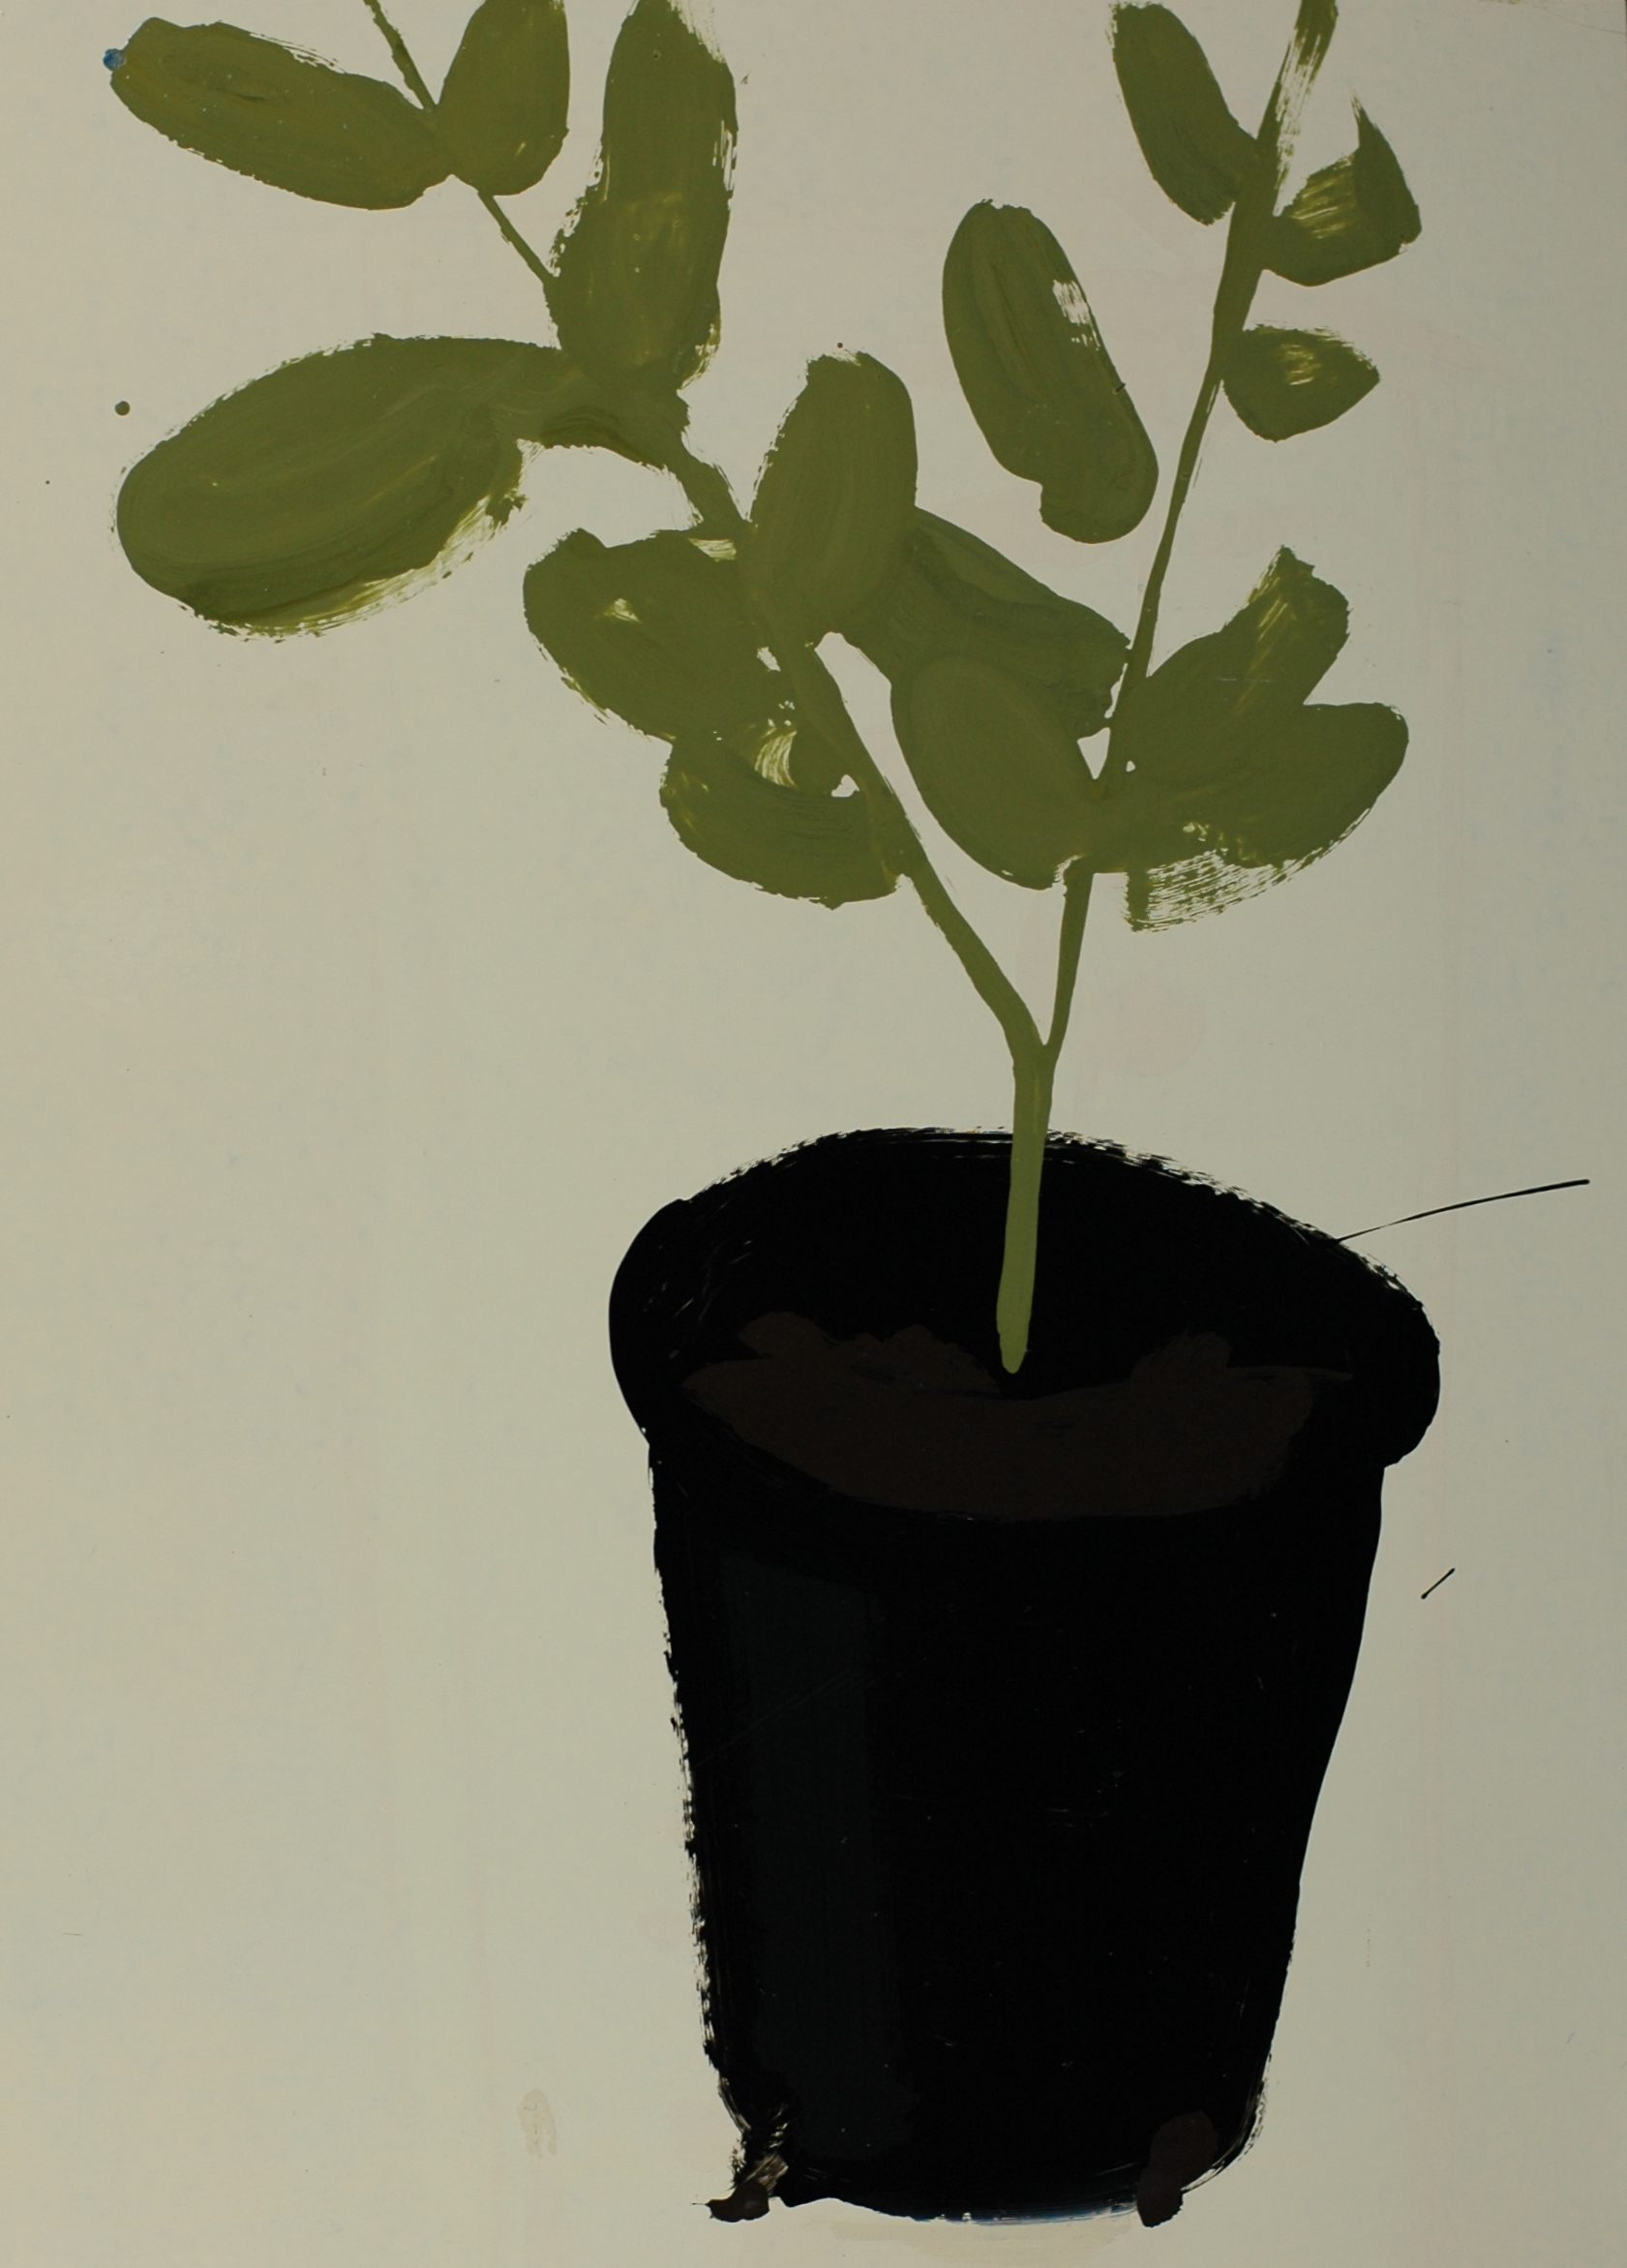 Gumtree in a Pot, 2001